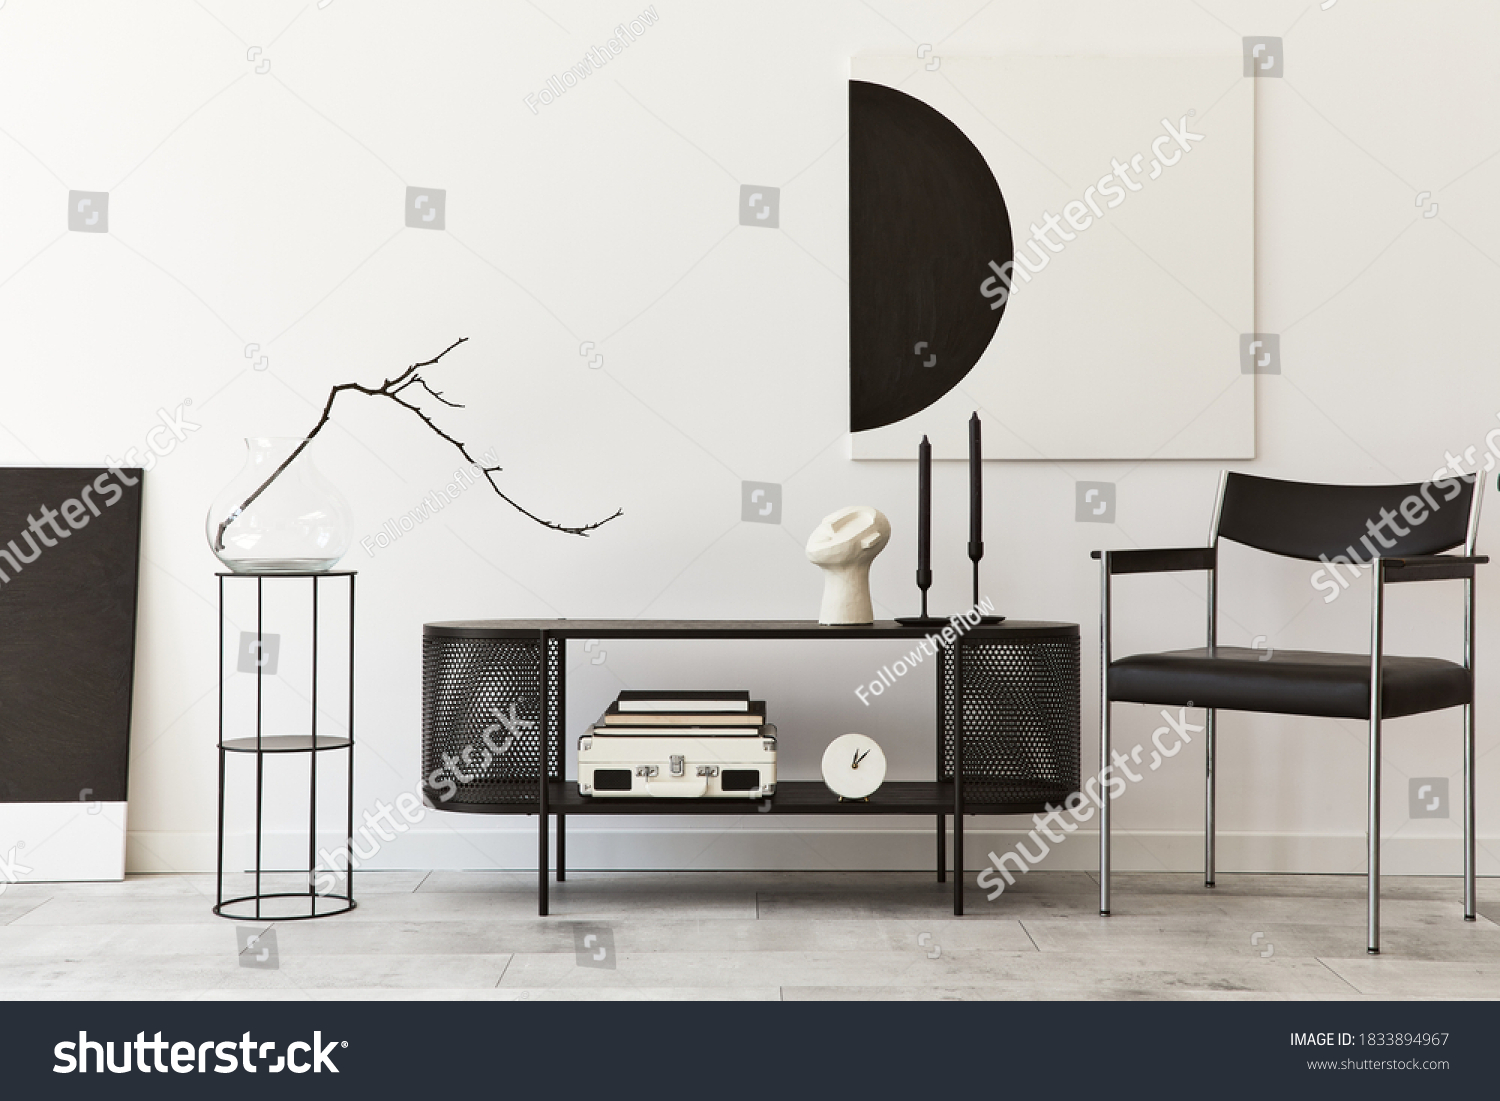 Interior design of modern living room with black stylish commode, chair, mock up art paintings, lamp, book, candlestick, decorations and elegant accessories in home decor. Template. #1833894967